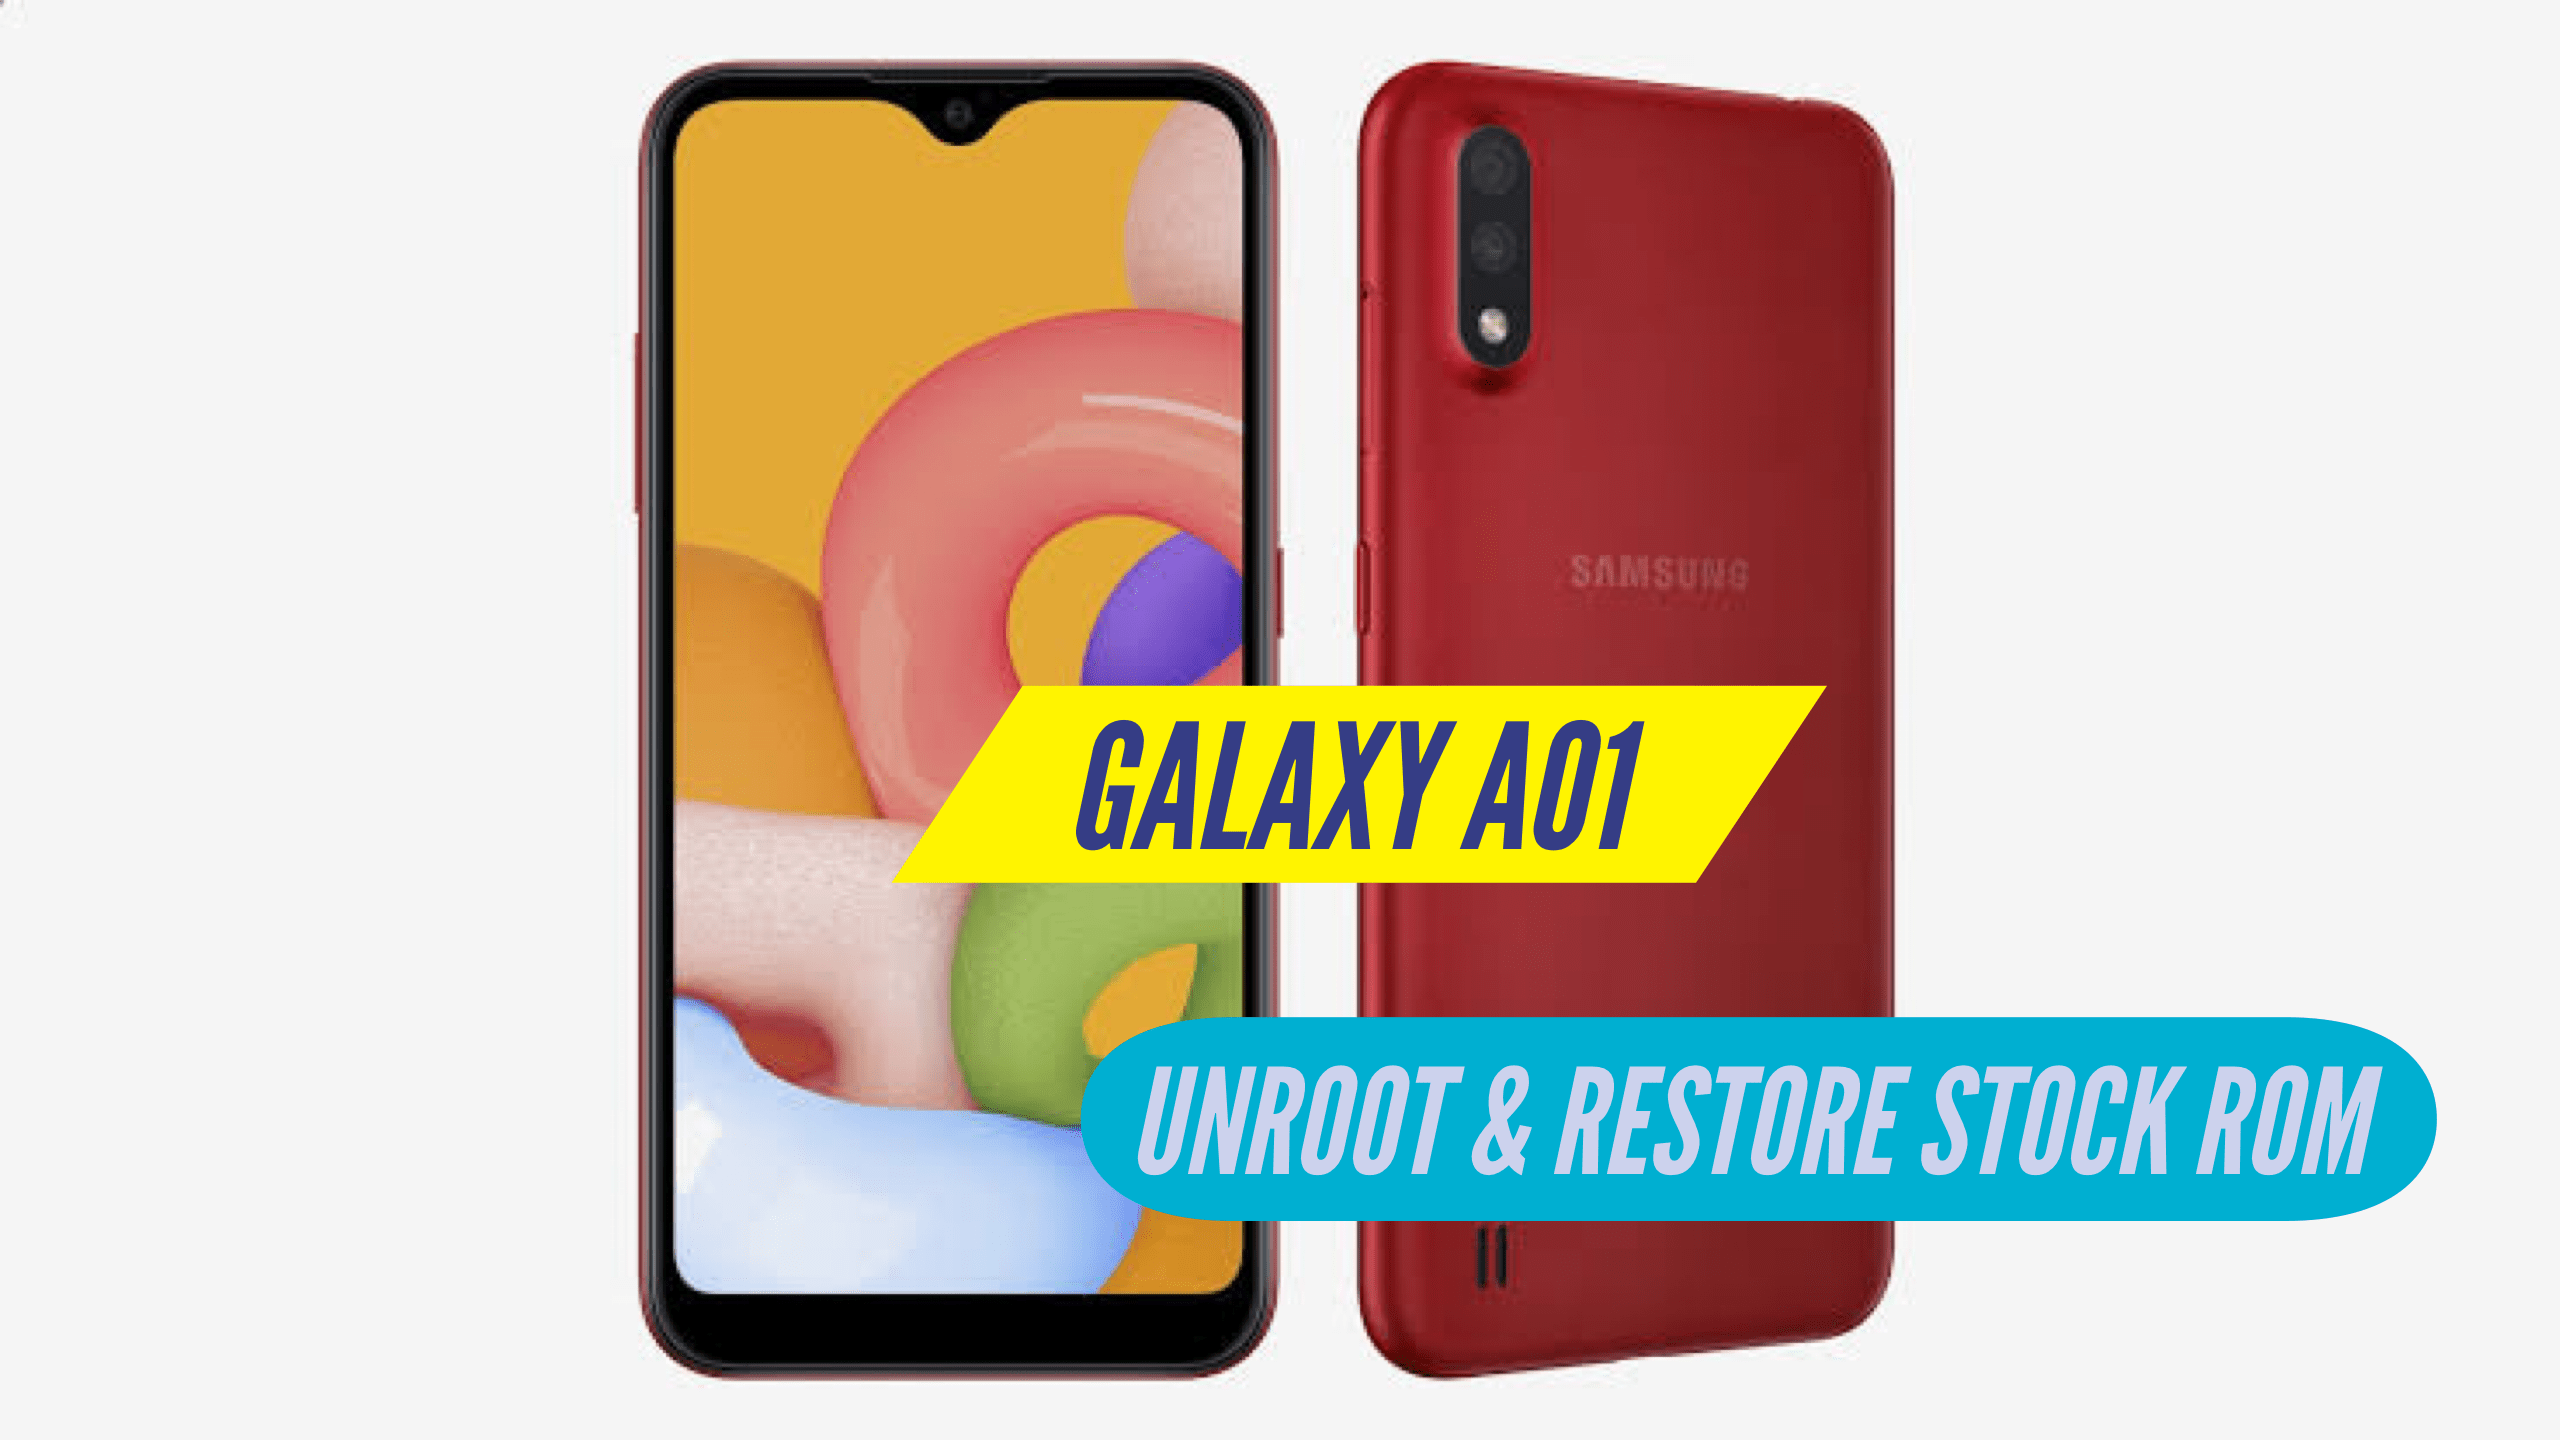 Unroot Samsung Galaxy A01 Restore Stock ROM